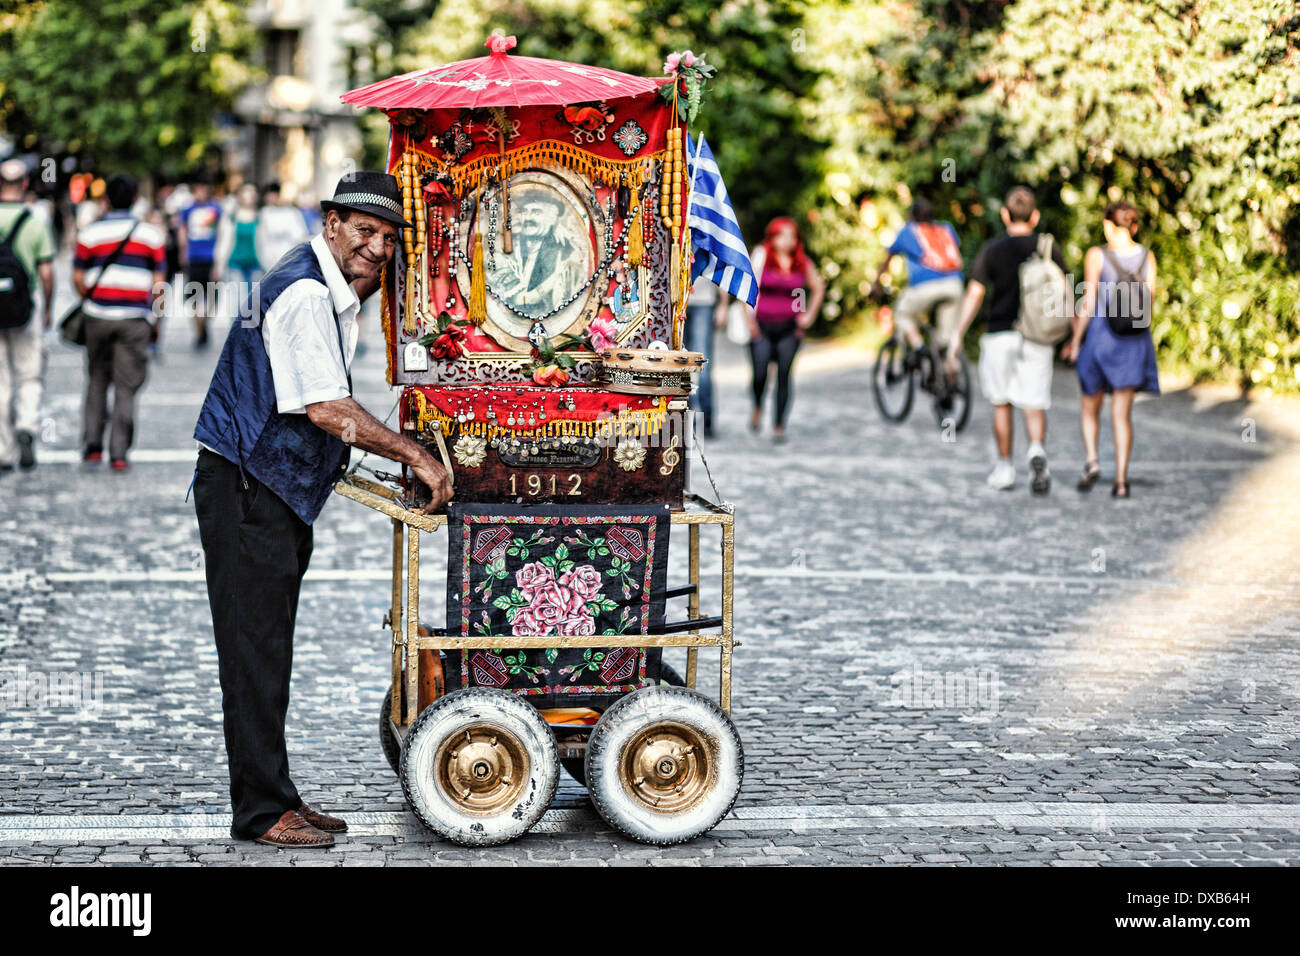 An old man playing lantern in the street of Athens, Greece - Stock Image